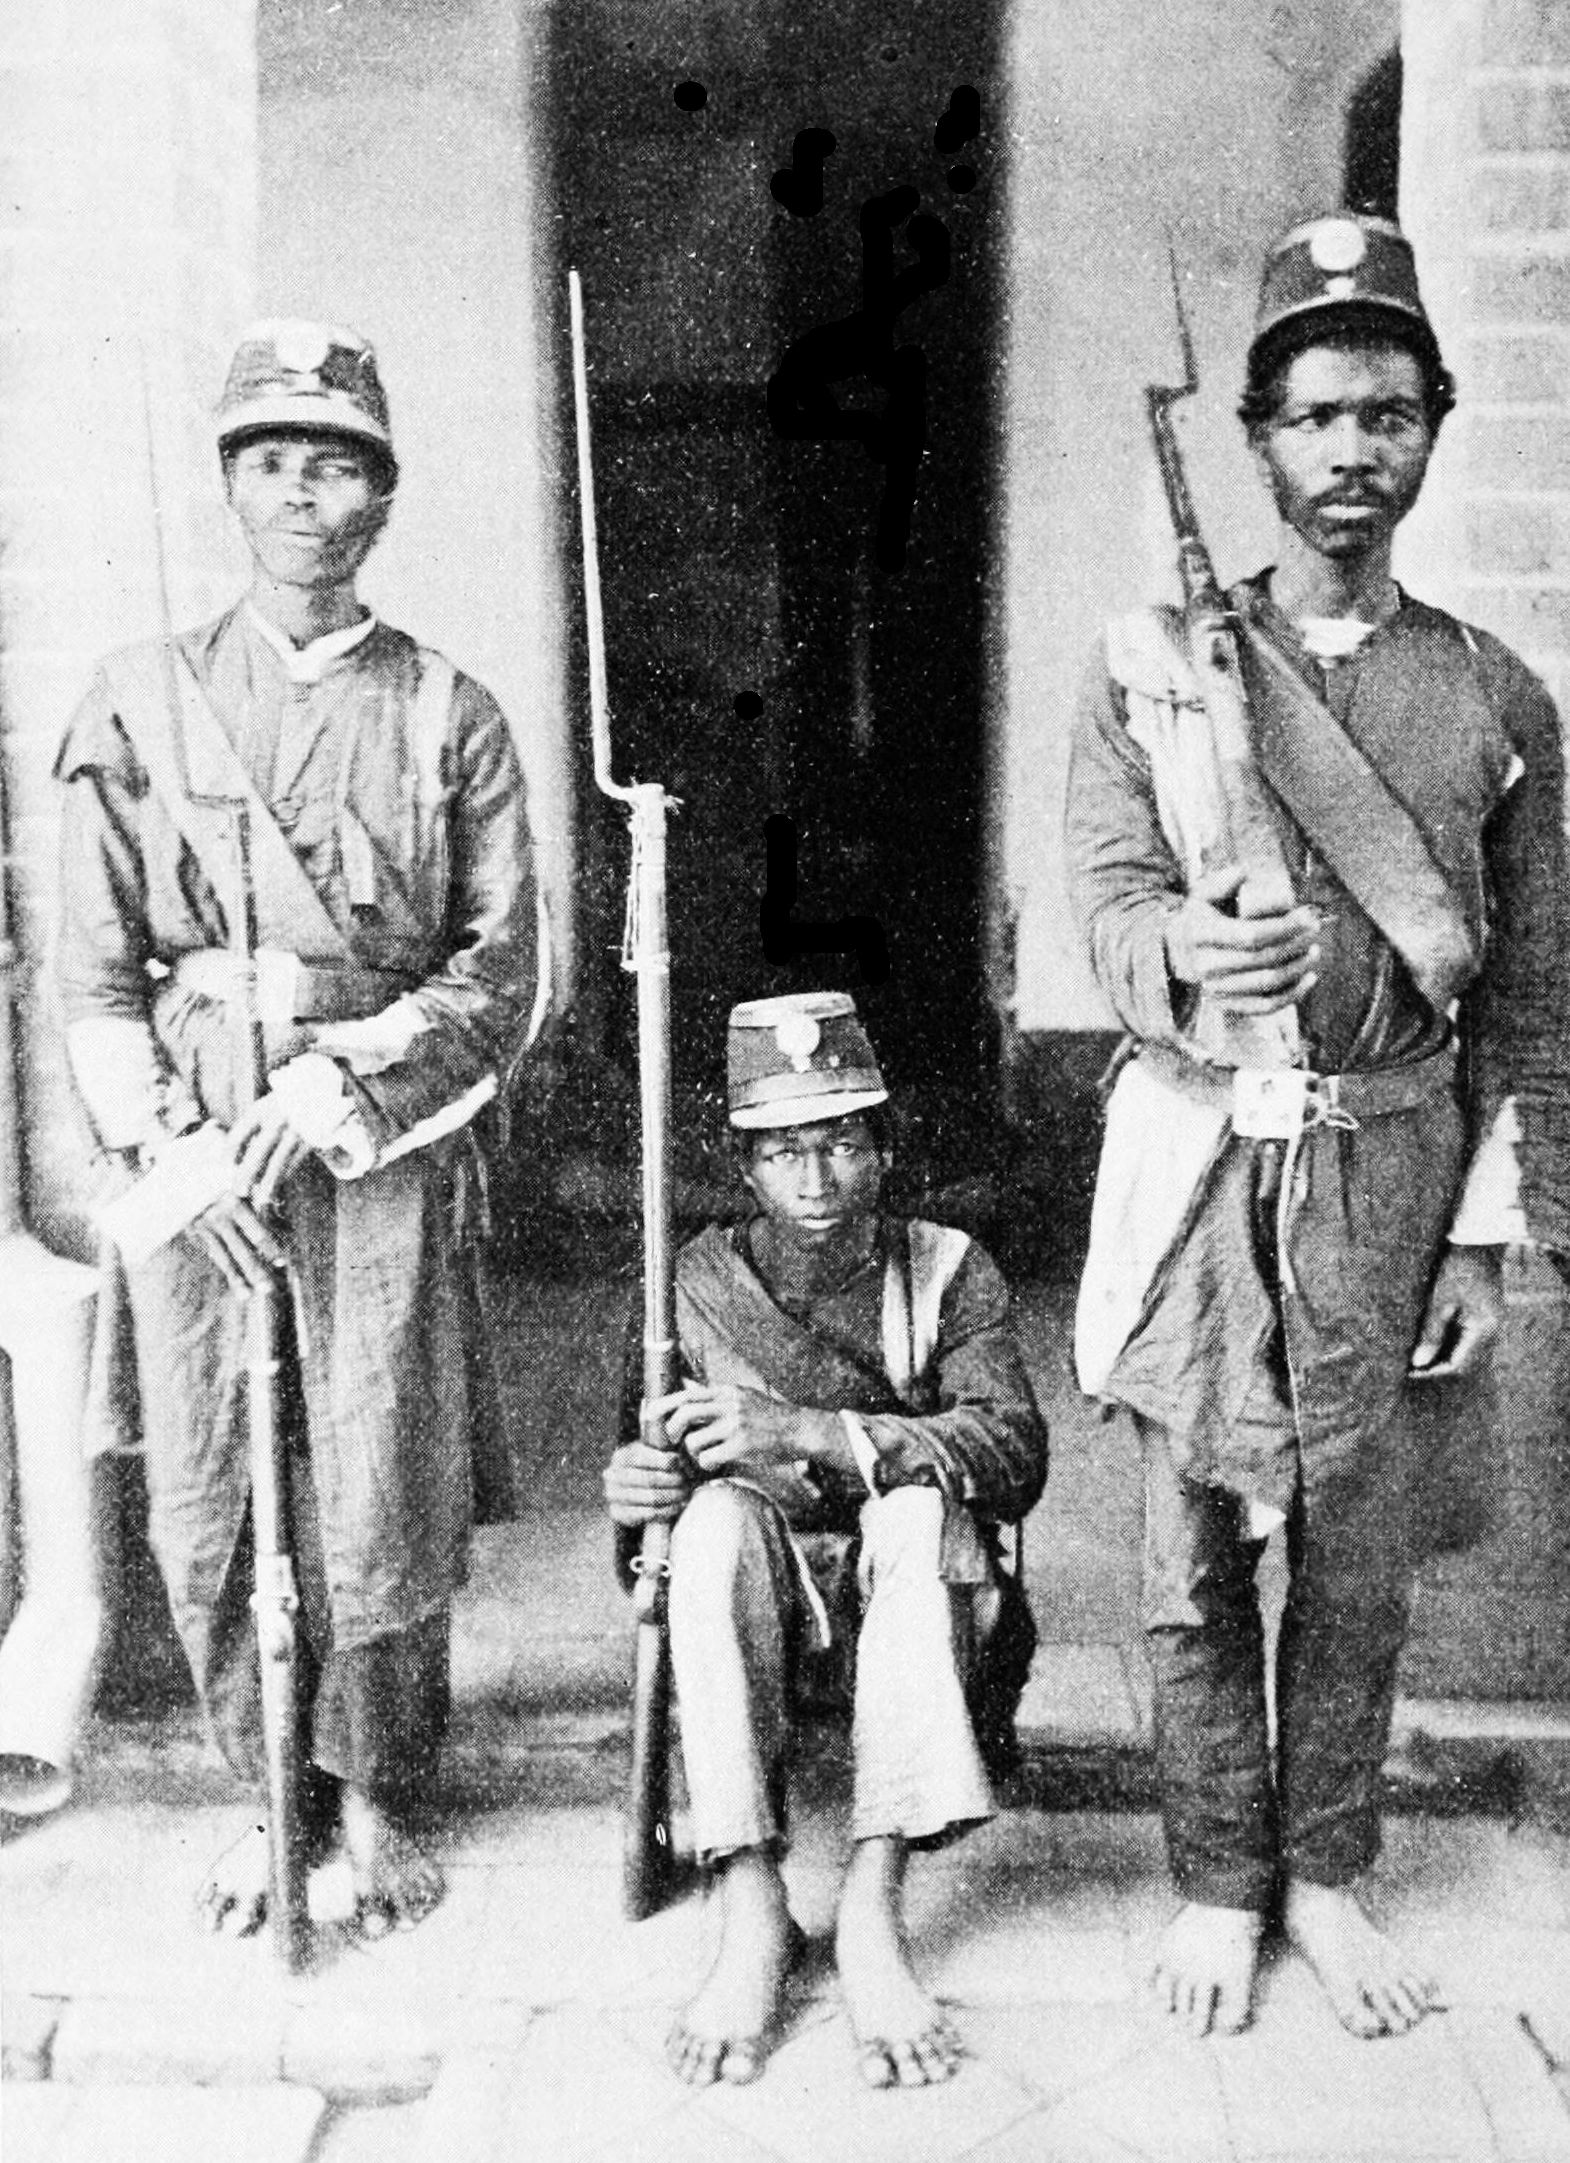 https://upload.wikimedia.org/wikipedia/commons/0/0a/PSM_V47_D258_Native_soldiers_of_madagascar.jpg